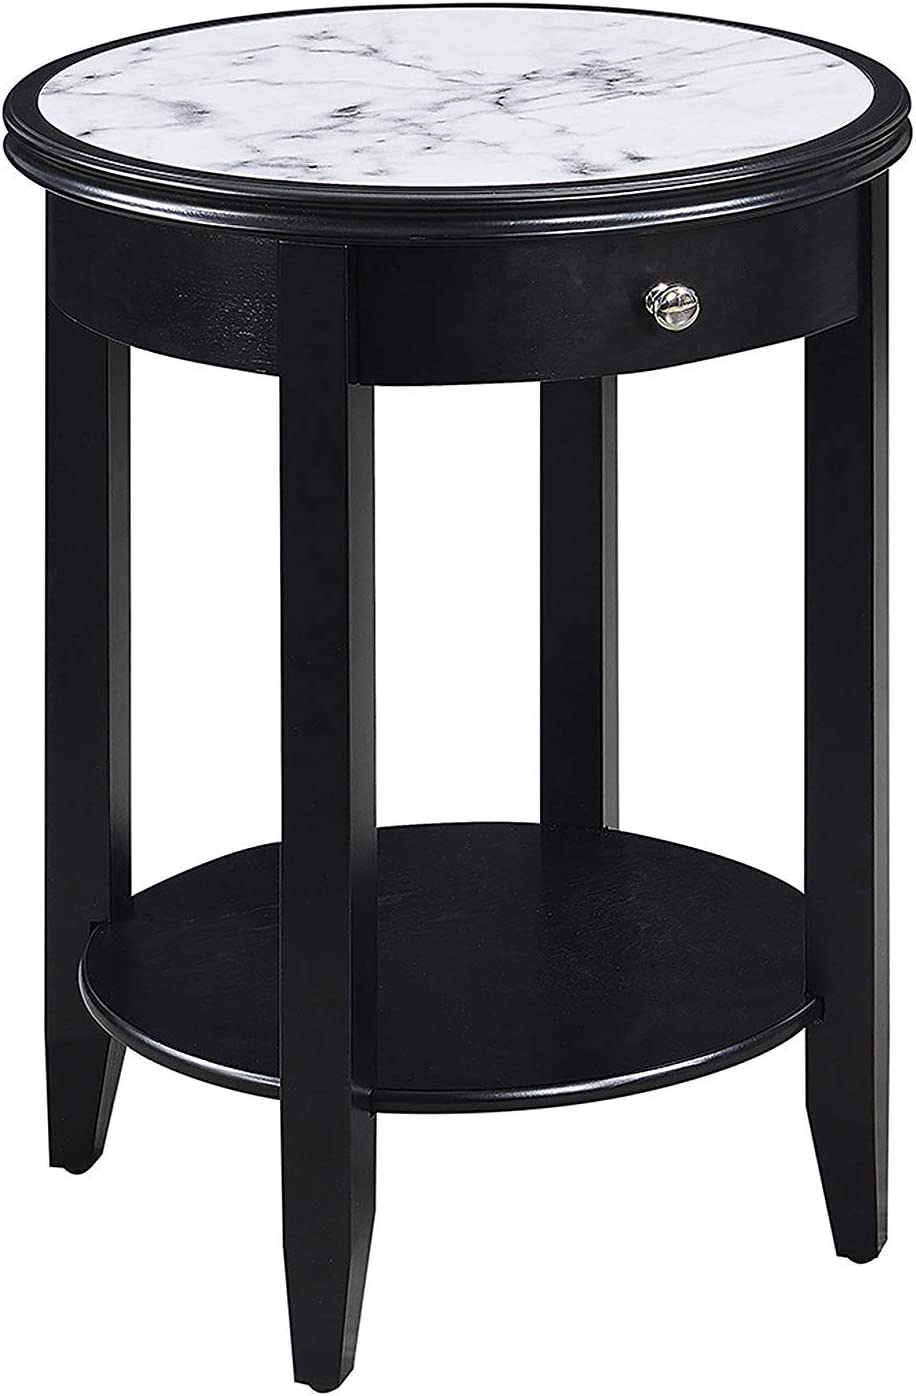 Convenience Concepts American Heritage Baldwin End Table with Drawer, White Marble / Black